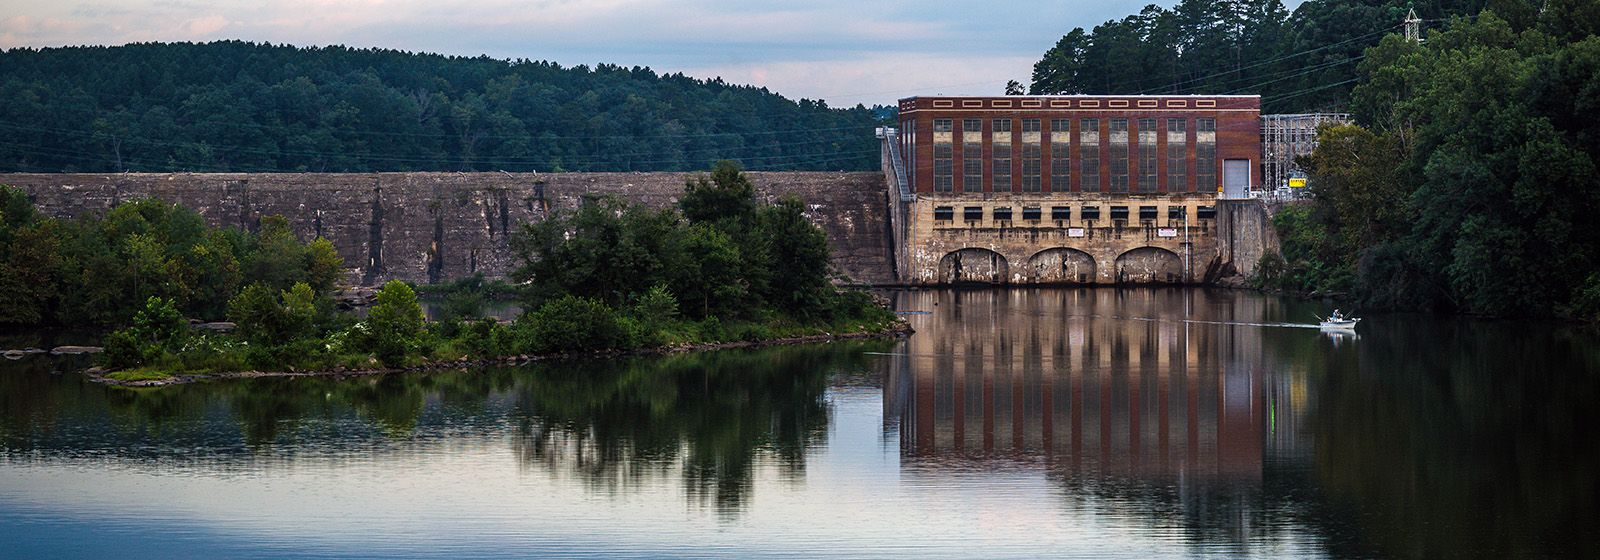 Breathtaking scenery surrounds hydro plant in NC